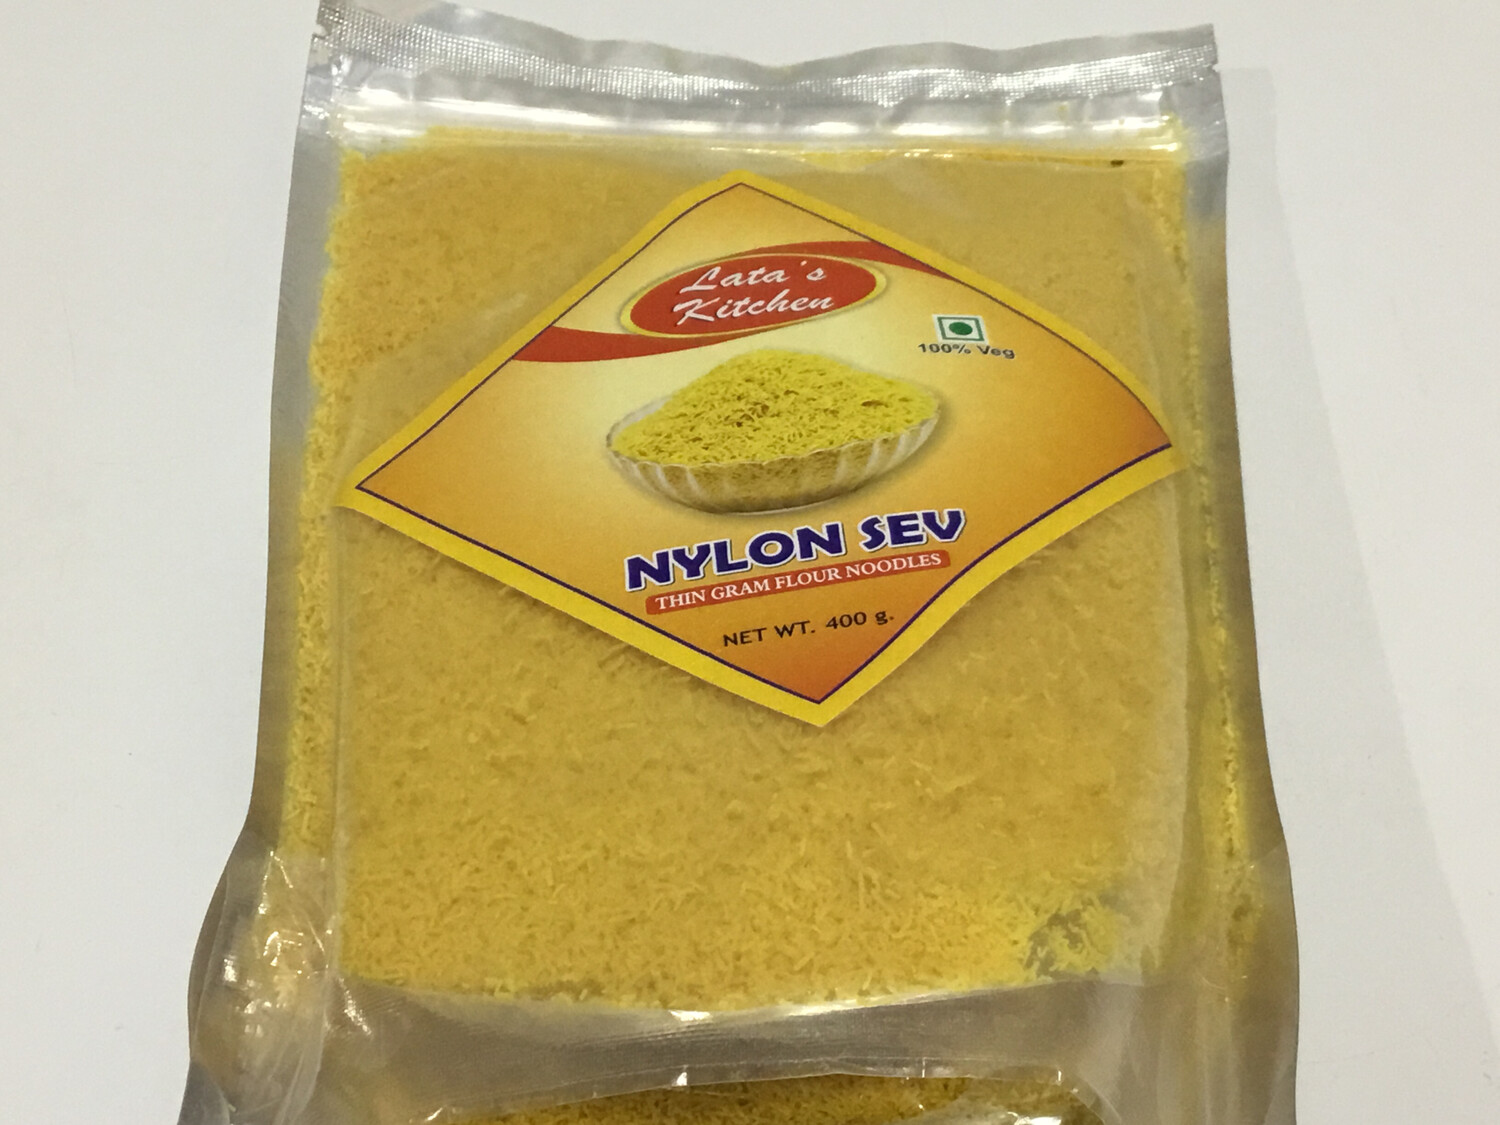 LK NYLON SEV 400 G @2 FOR $4.49 EACH